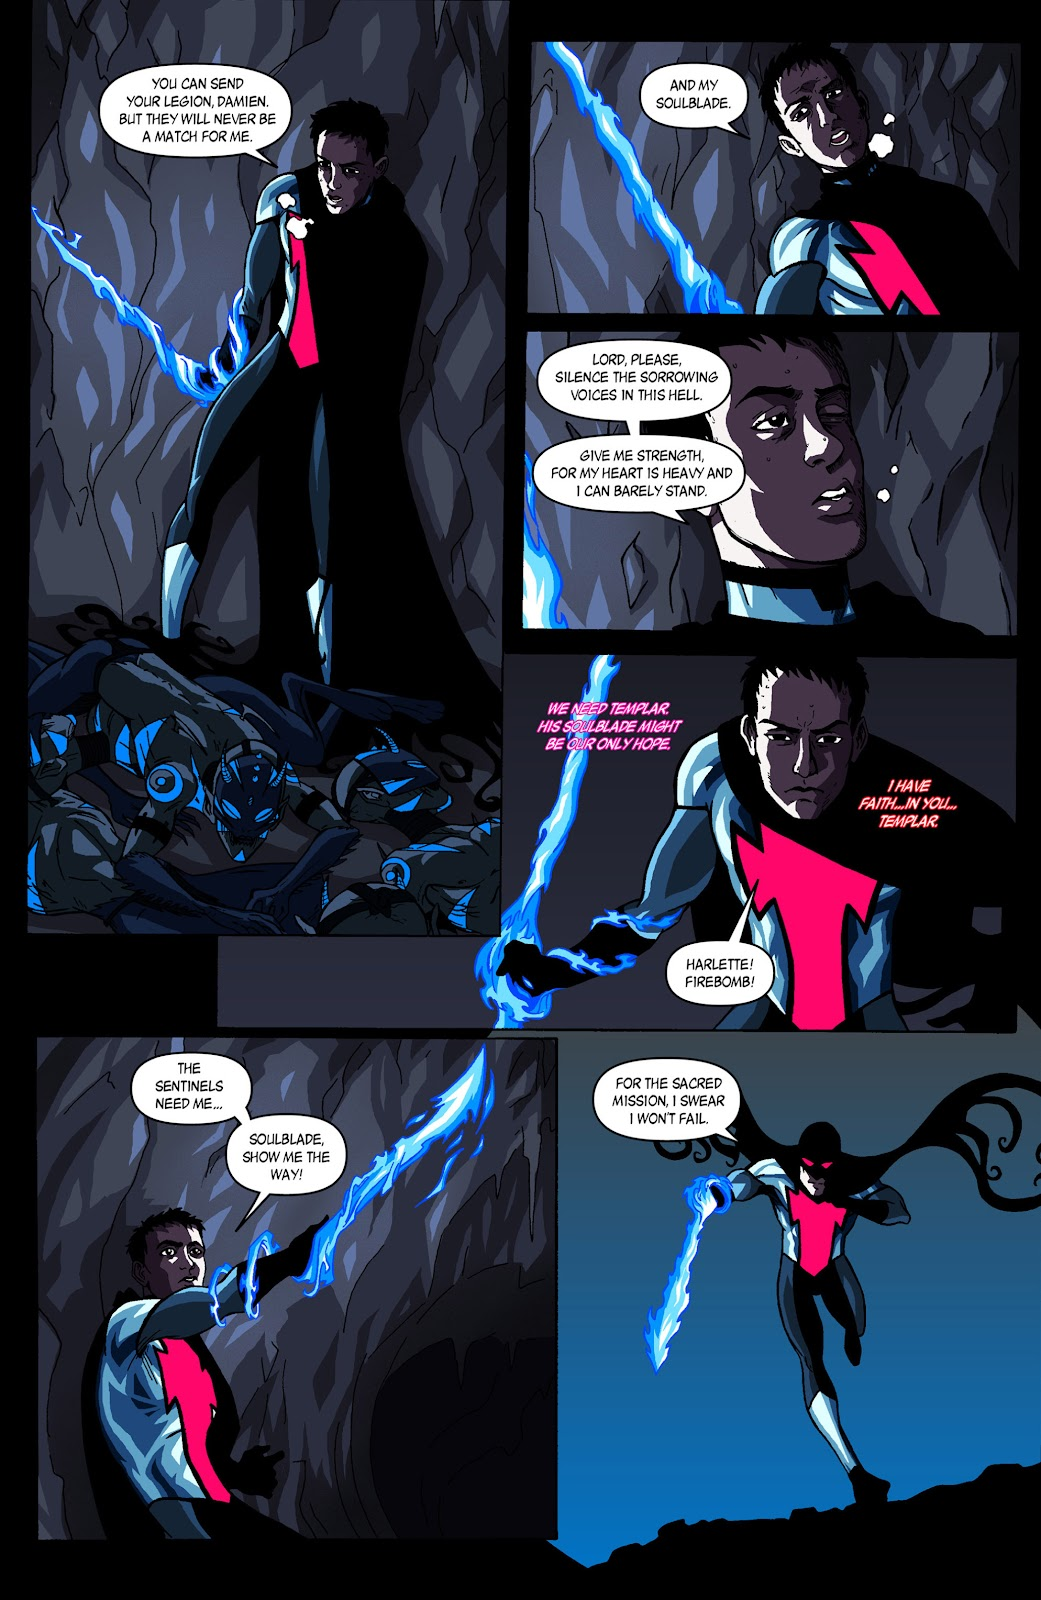 Sentinels issue 3 - Page 7